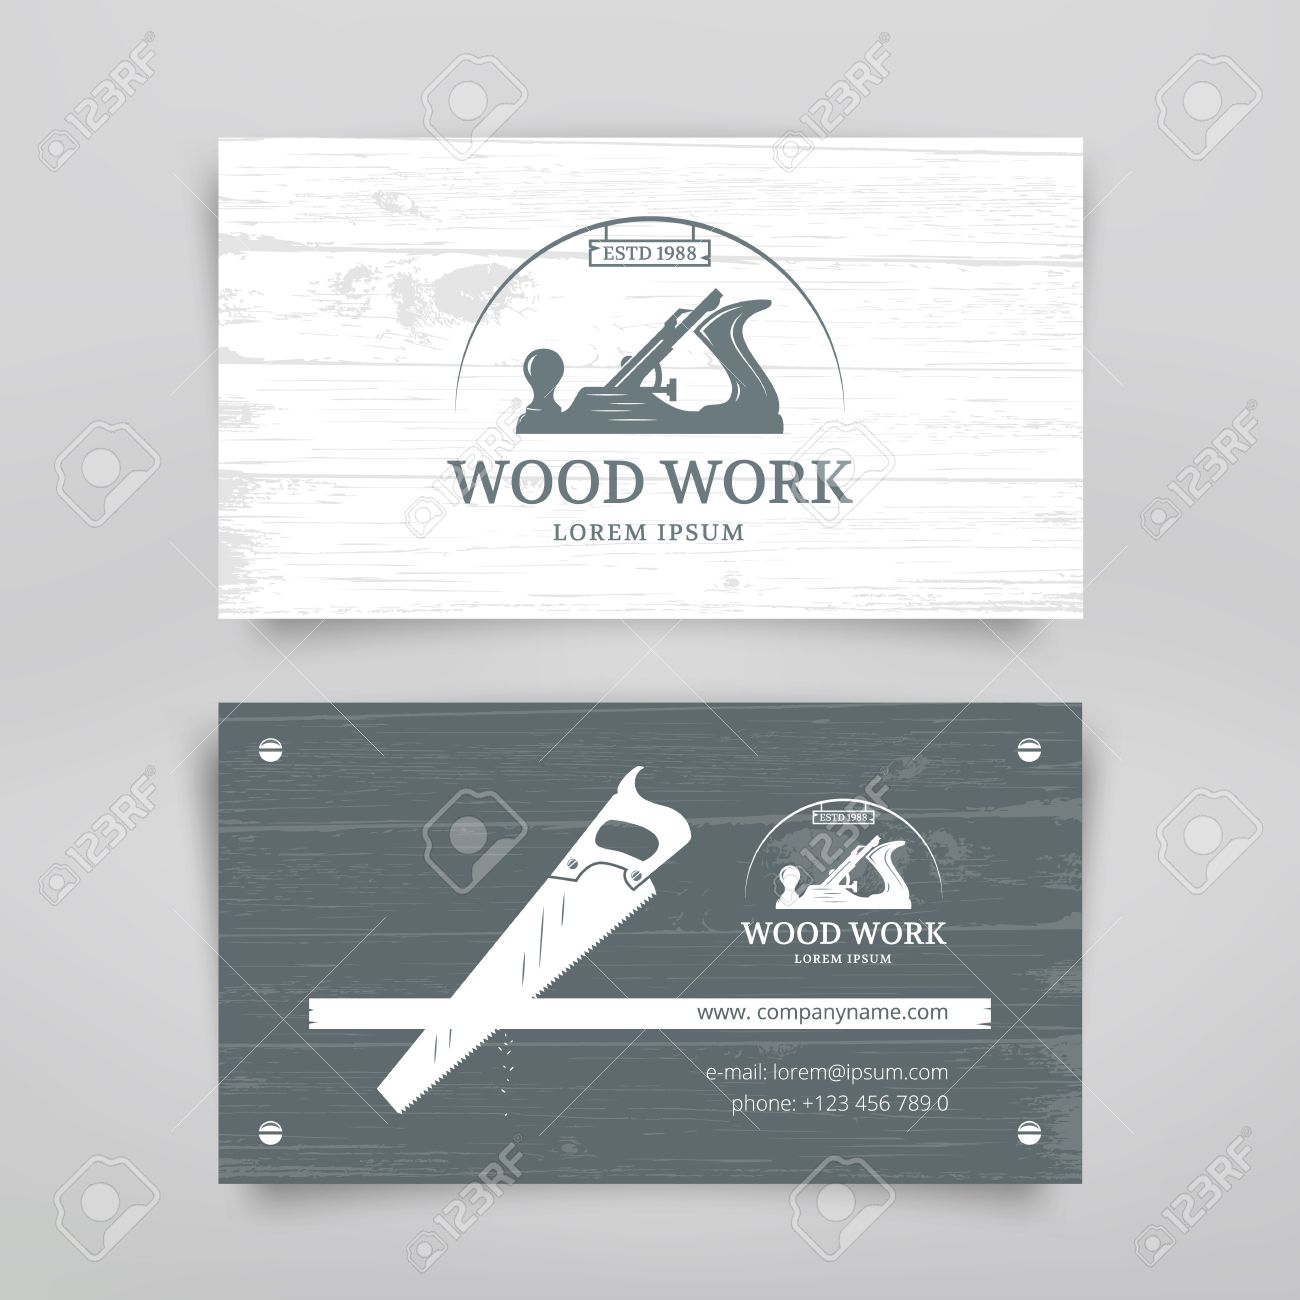 Woodwork Vintage Style Business Card Design Template. Carpentry ...